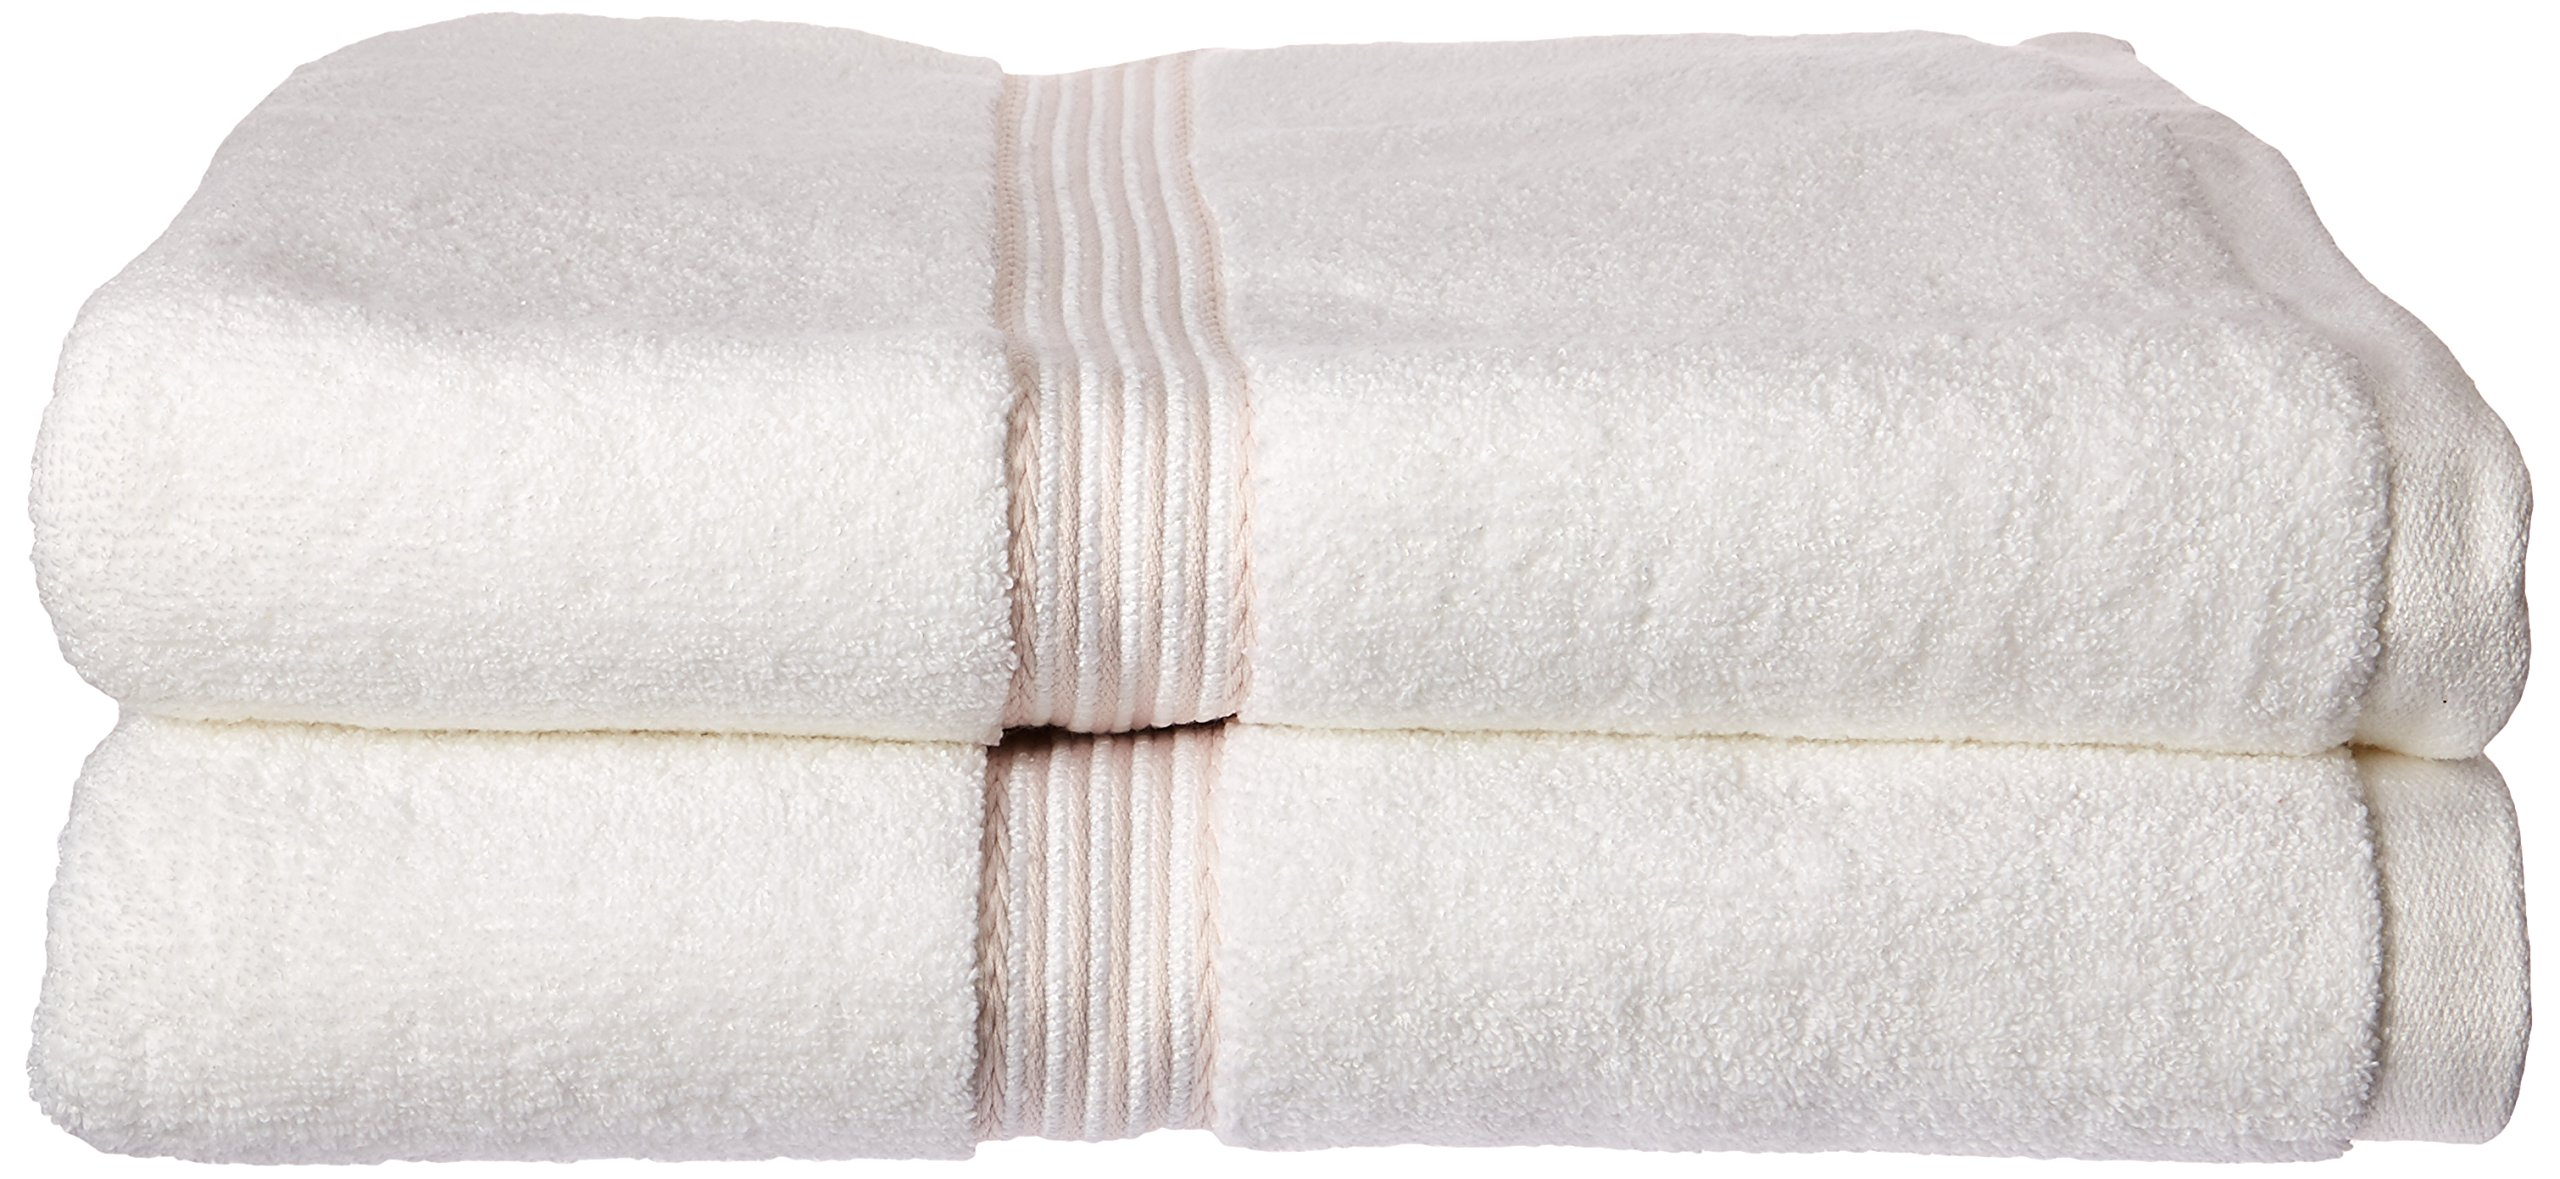 Everplush Classic Dobby Stripe Bath Towel, Set of 2, Rose - 2x bath towels (30 in x 56 in), 2x Hand towels (16 in x 30 in), 2x washcloths (13 in x 13 in) Powered by patented Everplush technology for always absorbent, long-lasting, quick-dry towels Soft cotton and microfiber construction instantly absorbs water - bathroom-linens, bathroom, bath-towels - 81jVXzp5GGL -